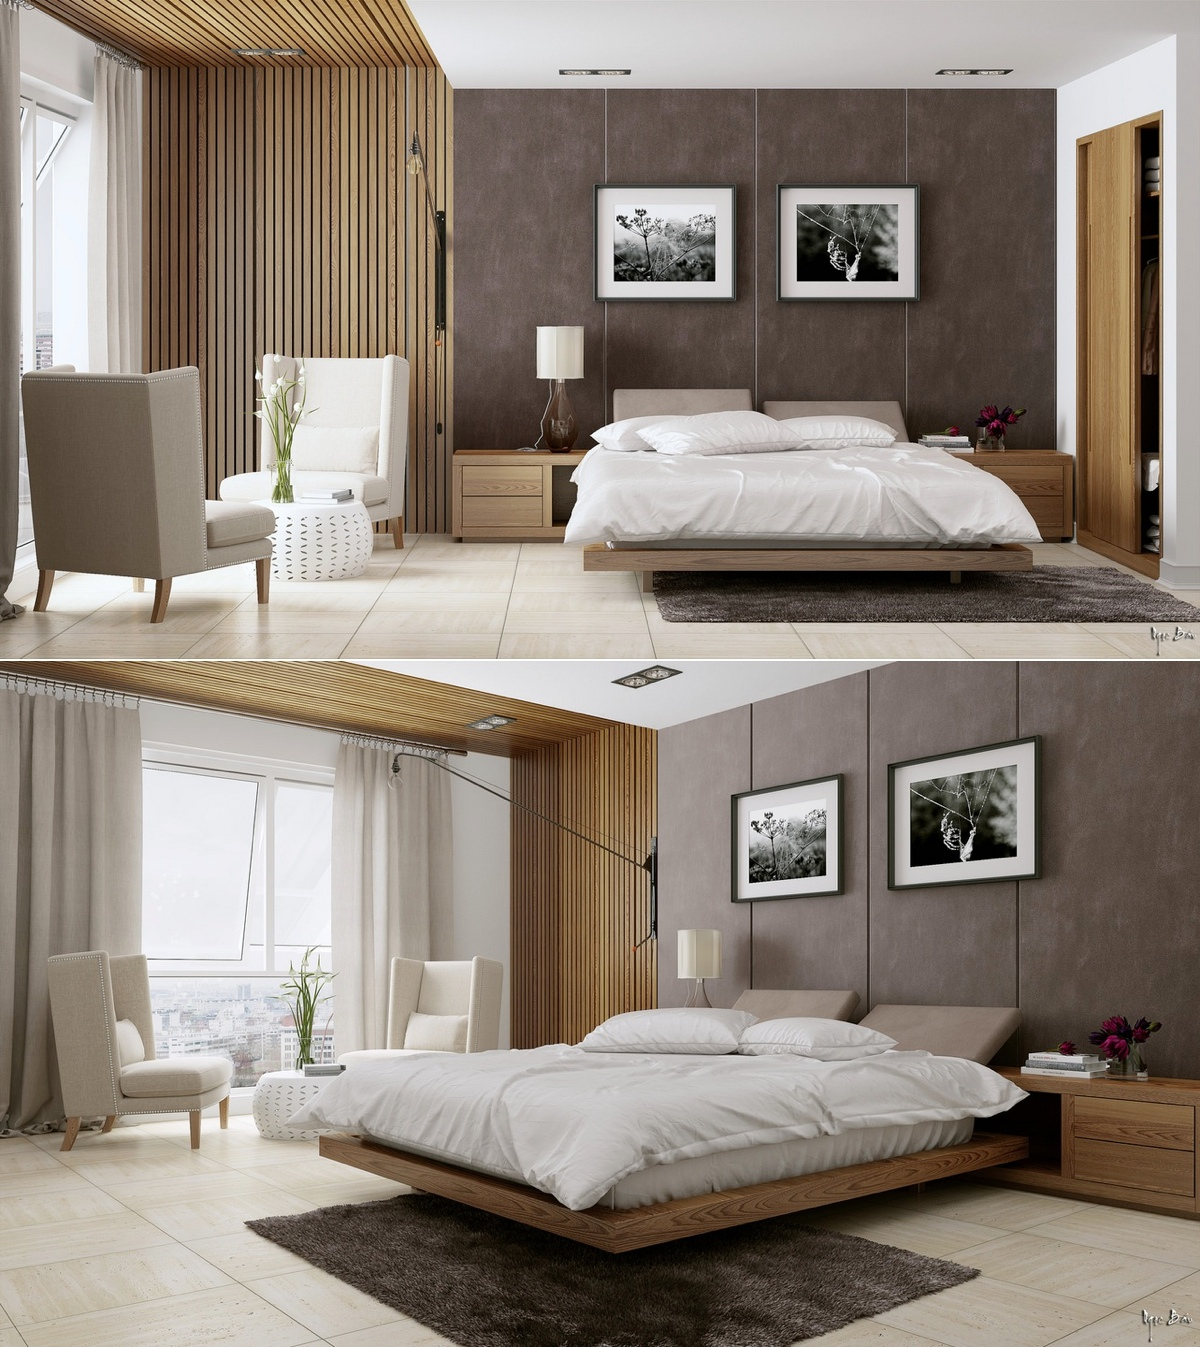 Romantic modern bedroom interior design ideas for Modern romantic interior design